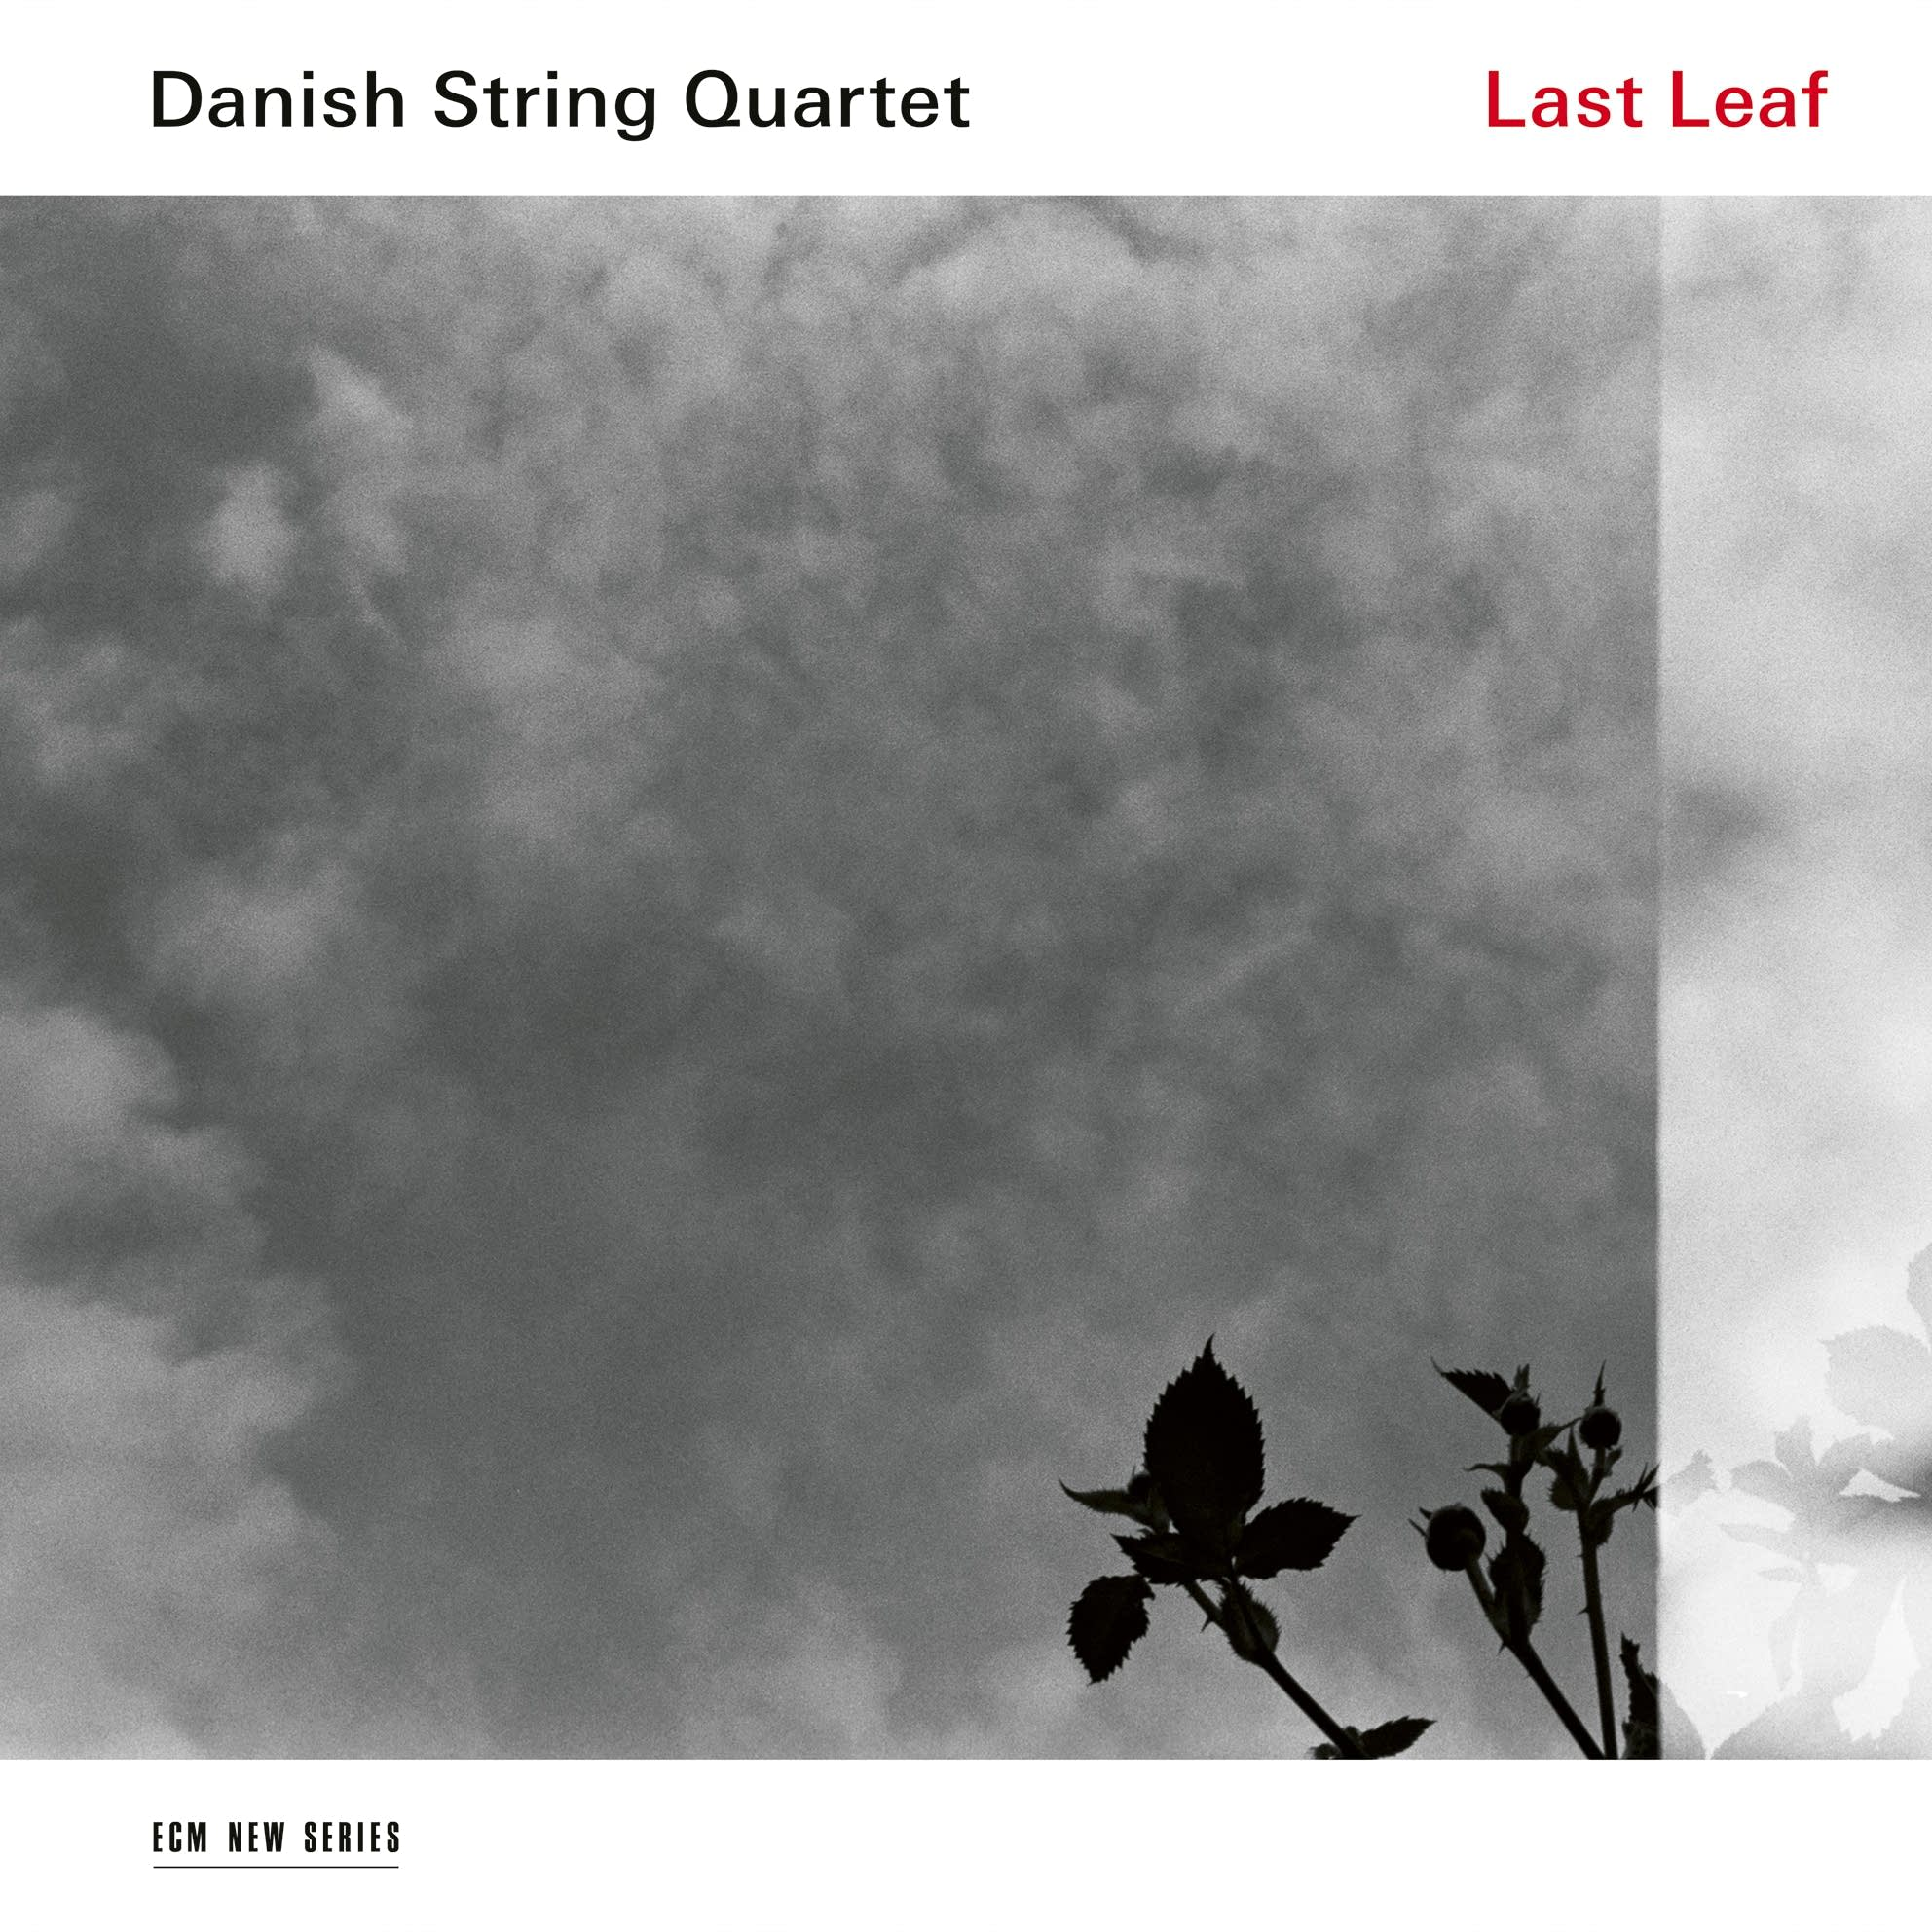 The Danish String Quartet: Last Leaf